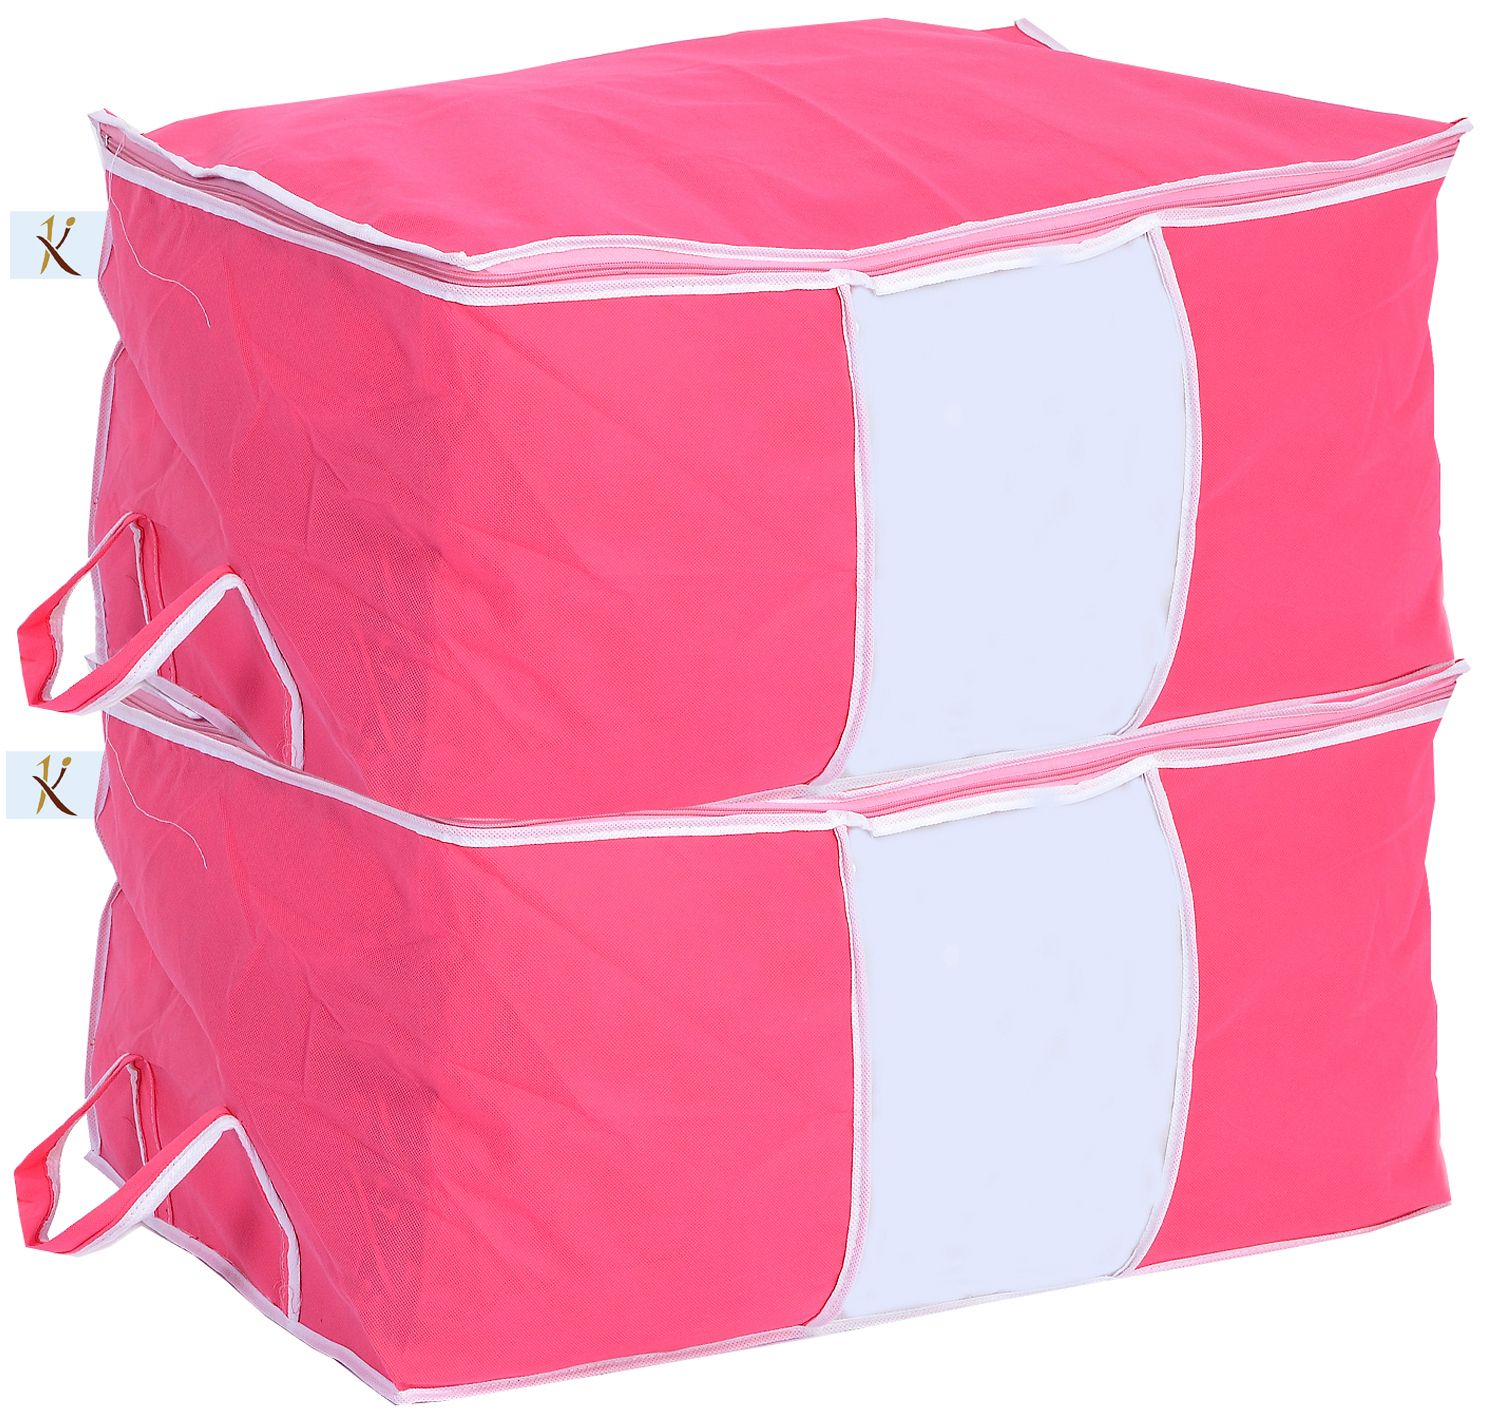 Kuber Industries™ Big Underbed Storage Bag,Storage Organiser Set of 2 Pcs - Pink (Code-UNDB010)